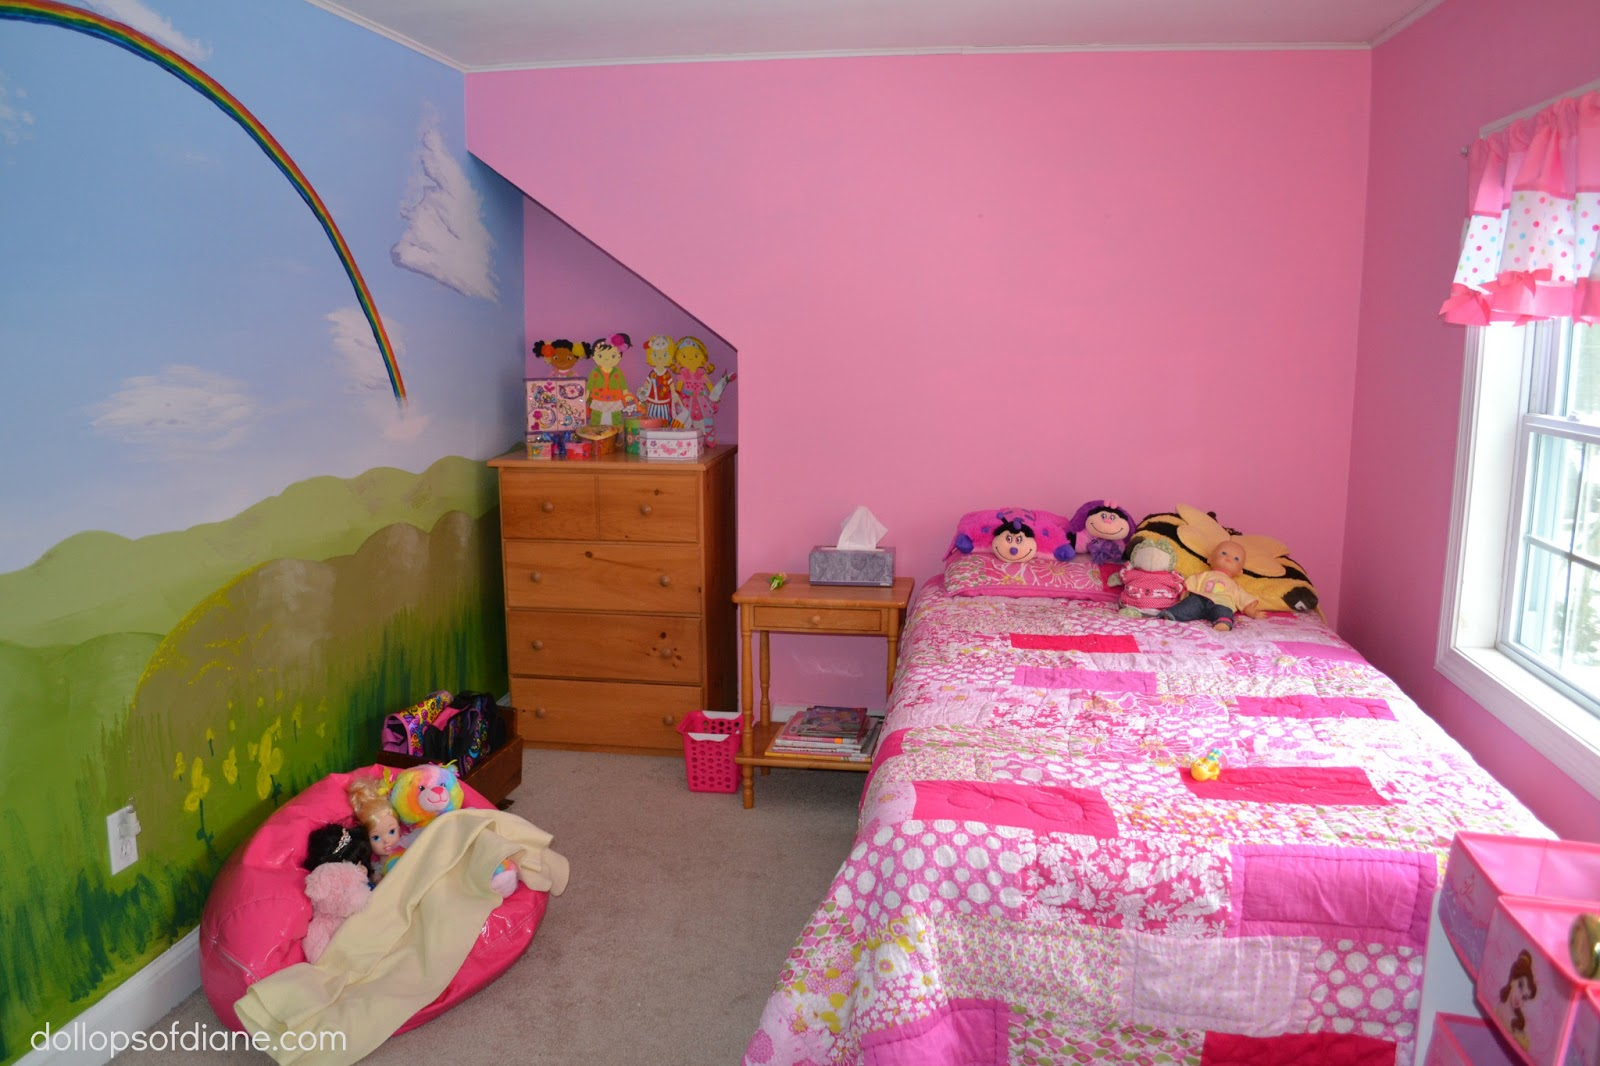 Dollops of diane the perfect room for a five year old girl for 5 bedrooms